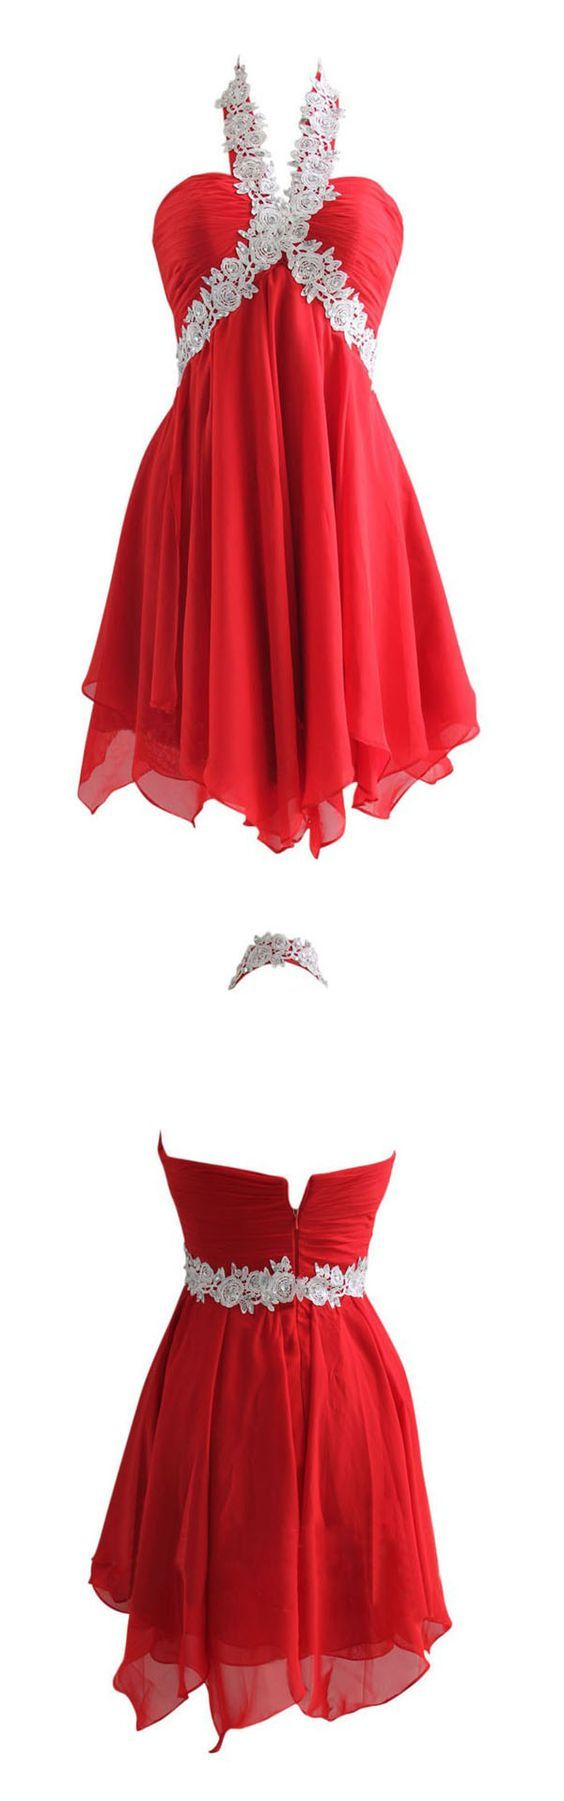 Sexy A-line Halter Short Empire Red Chiffon Homecoming Dress with Appliques,Fashion Homecoming Dress,Sexy Party Dress,Custom Made Evening Dress